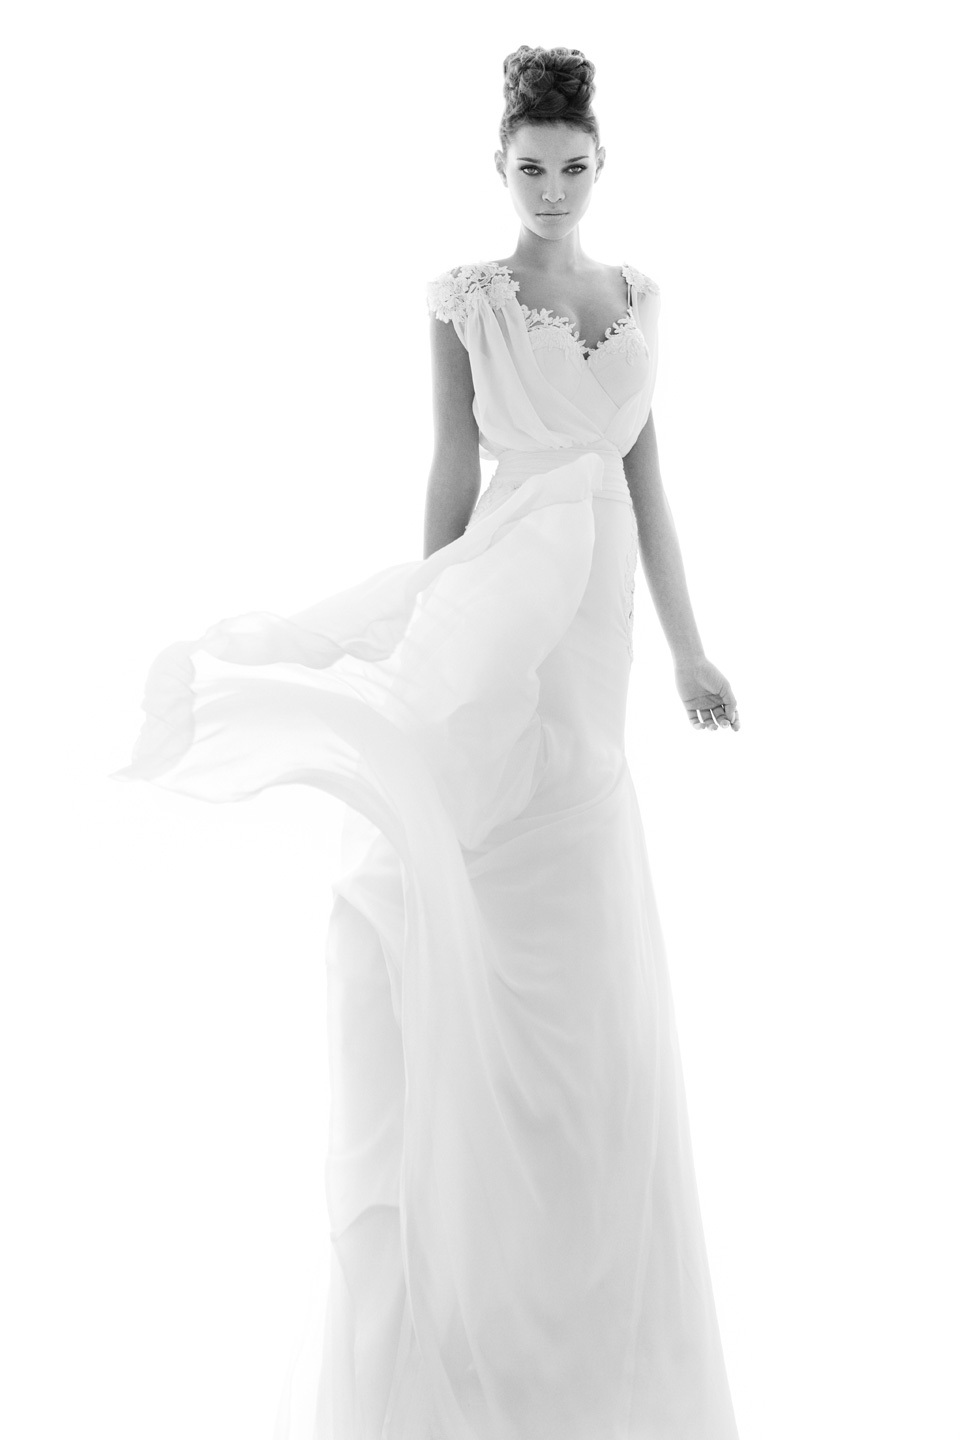 Featherlight-chiffon-wedding-dress-with-touches-of-lace.full